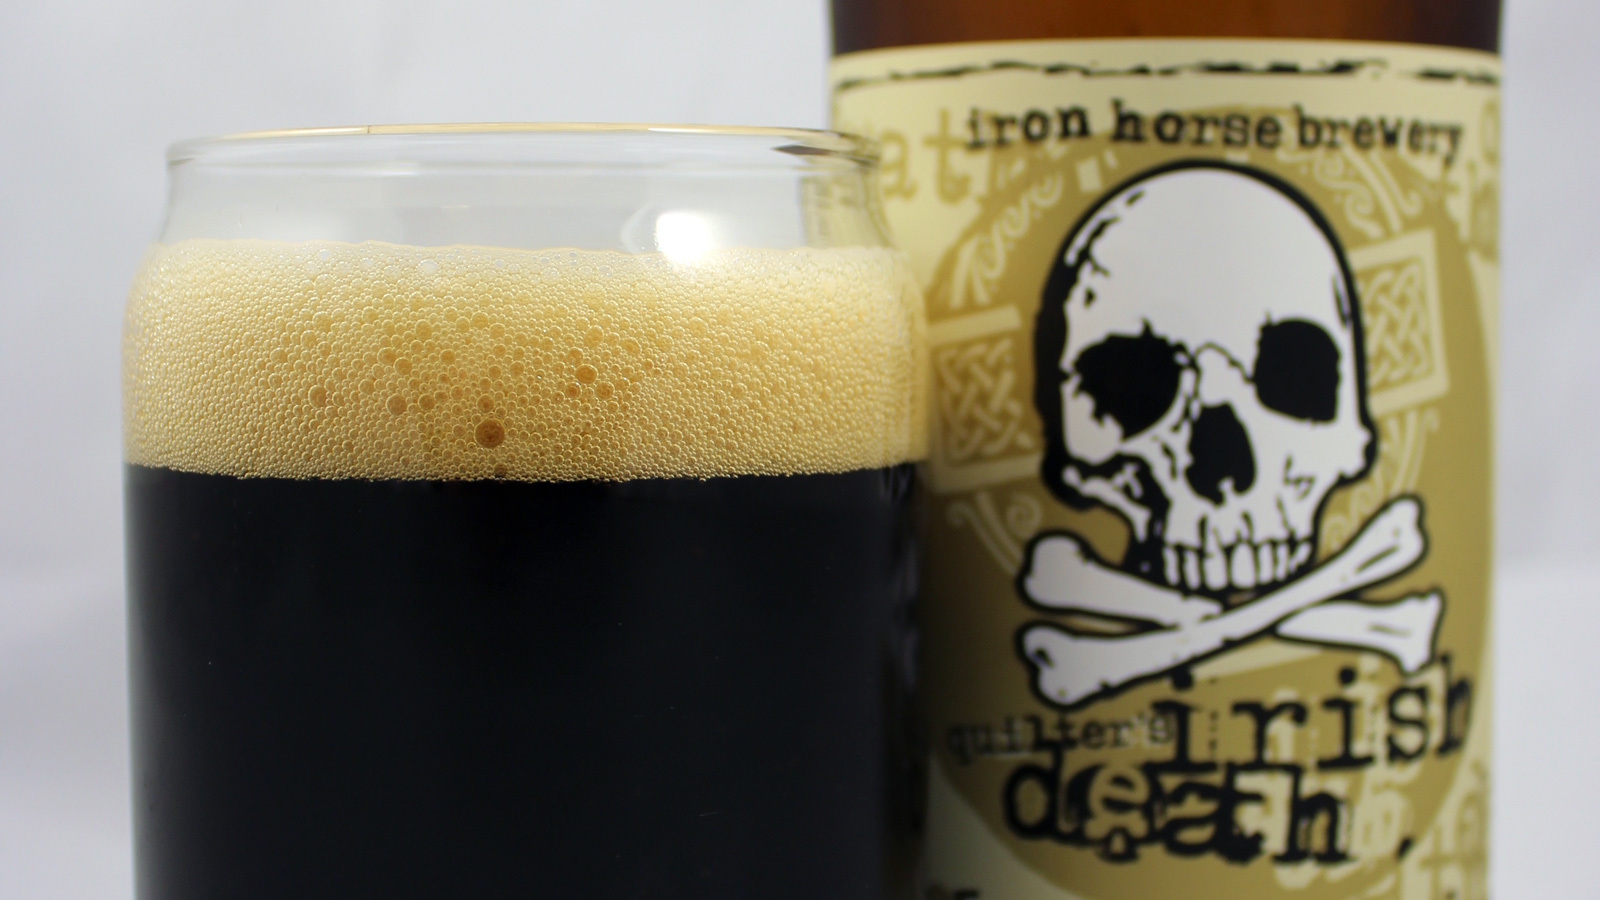 A glass of Irish Death beer next to its bottle